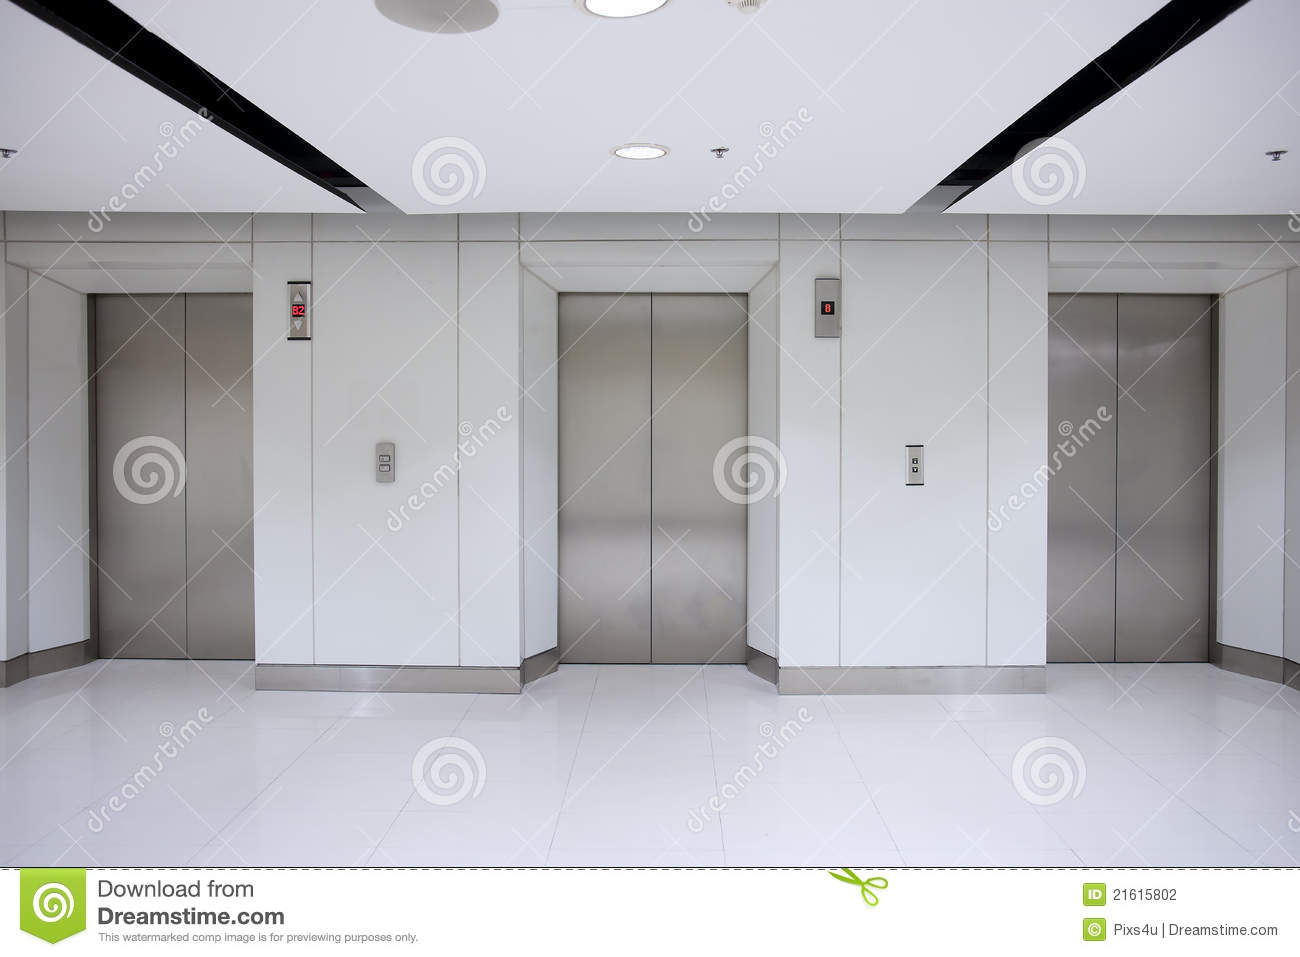 3 Elevator In Office Building Stock Photography - Image: 21615802